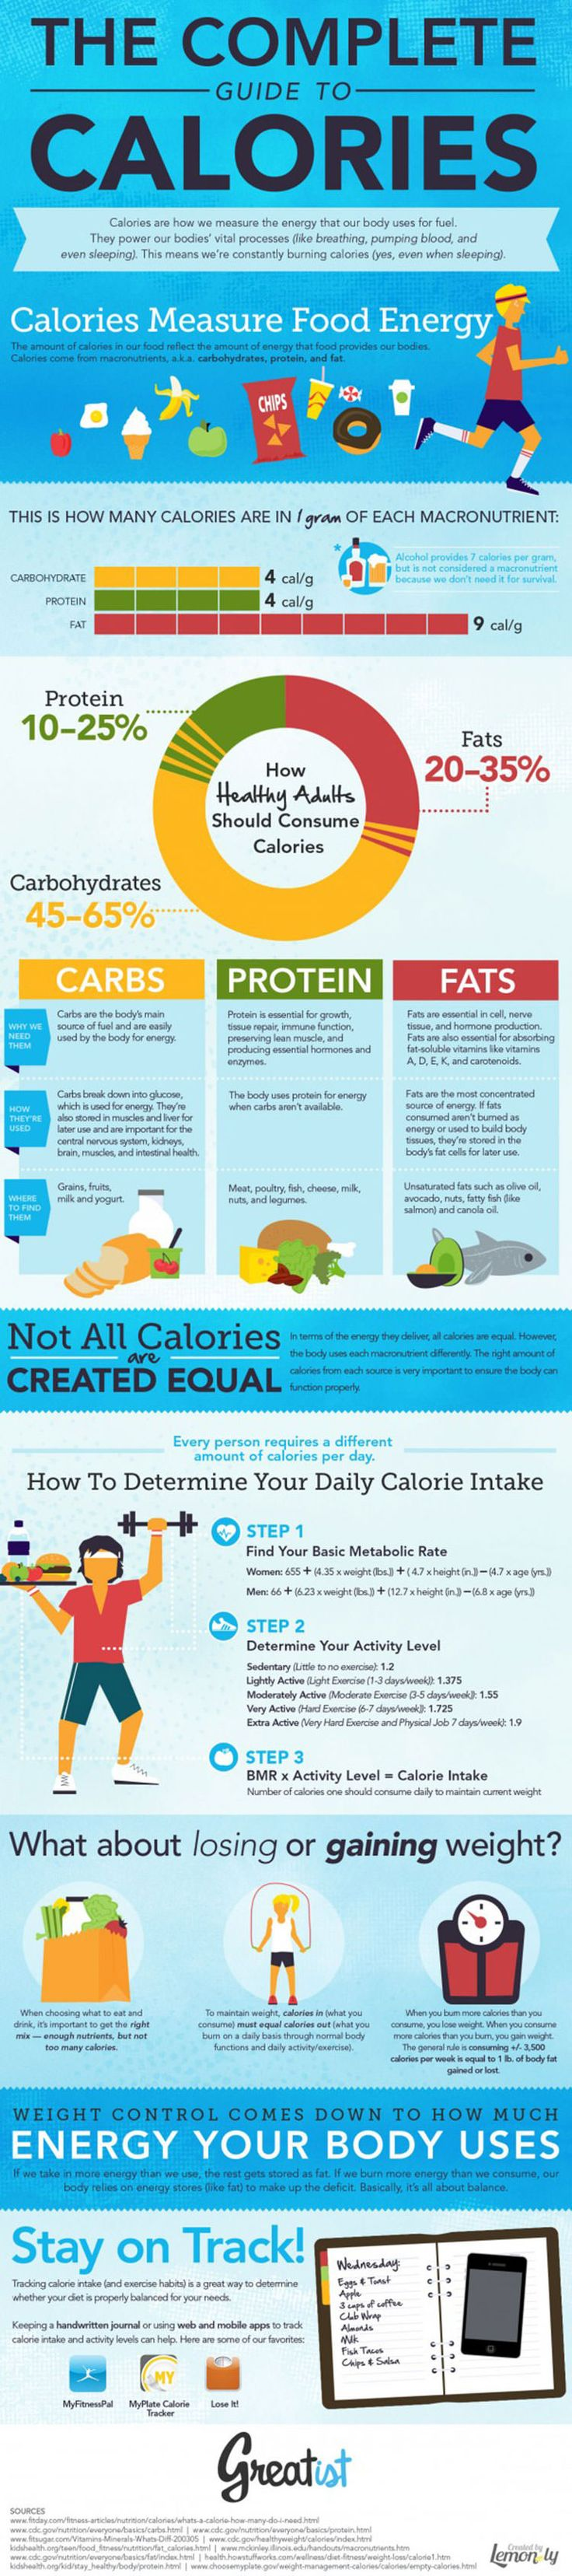 The daily calorie intake calculator will give you an estimate of required calories to maintain your current weight. To lose weight, you will need to create a calorie deficit either by reduced calorie intake or